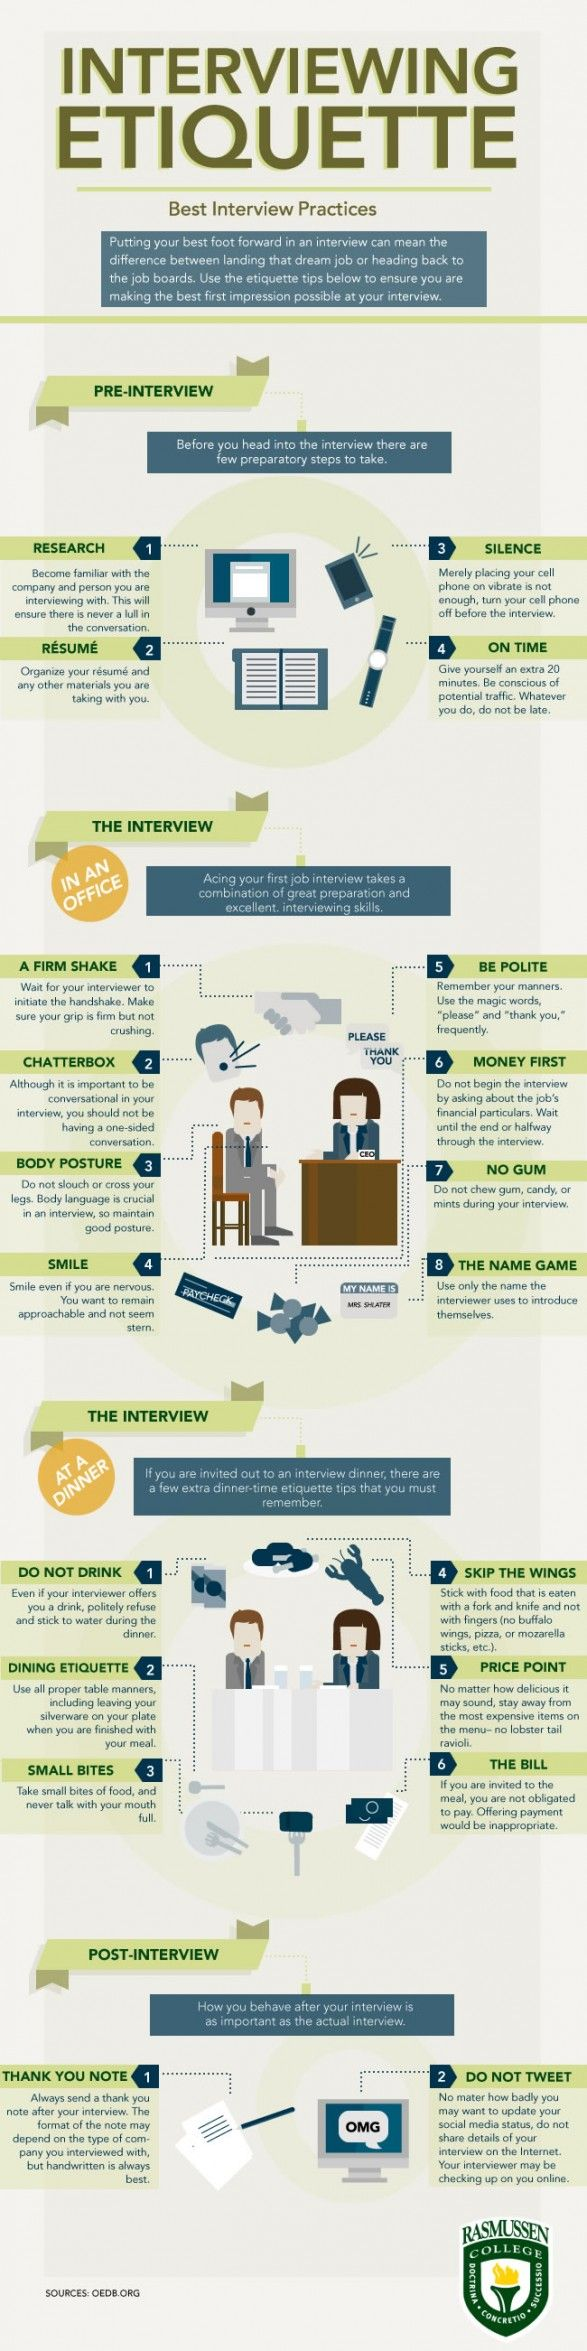 330 best FCS - Careers images on Pinterest | Career advice, Career ...